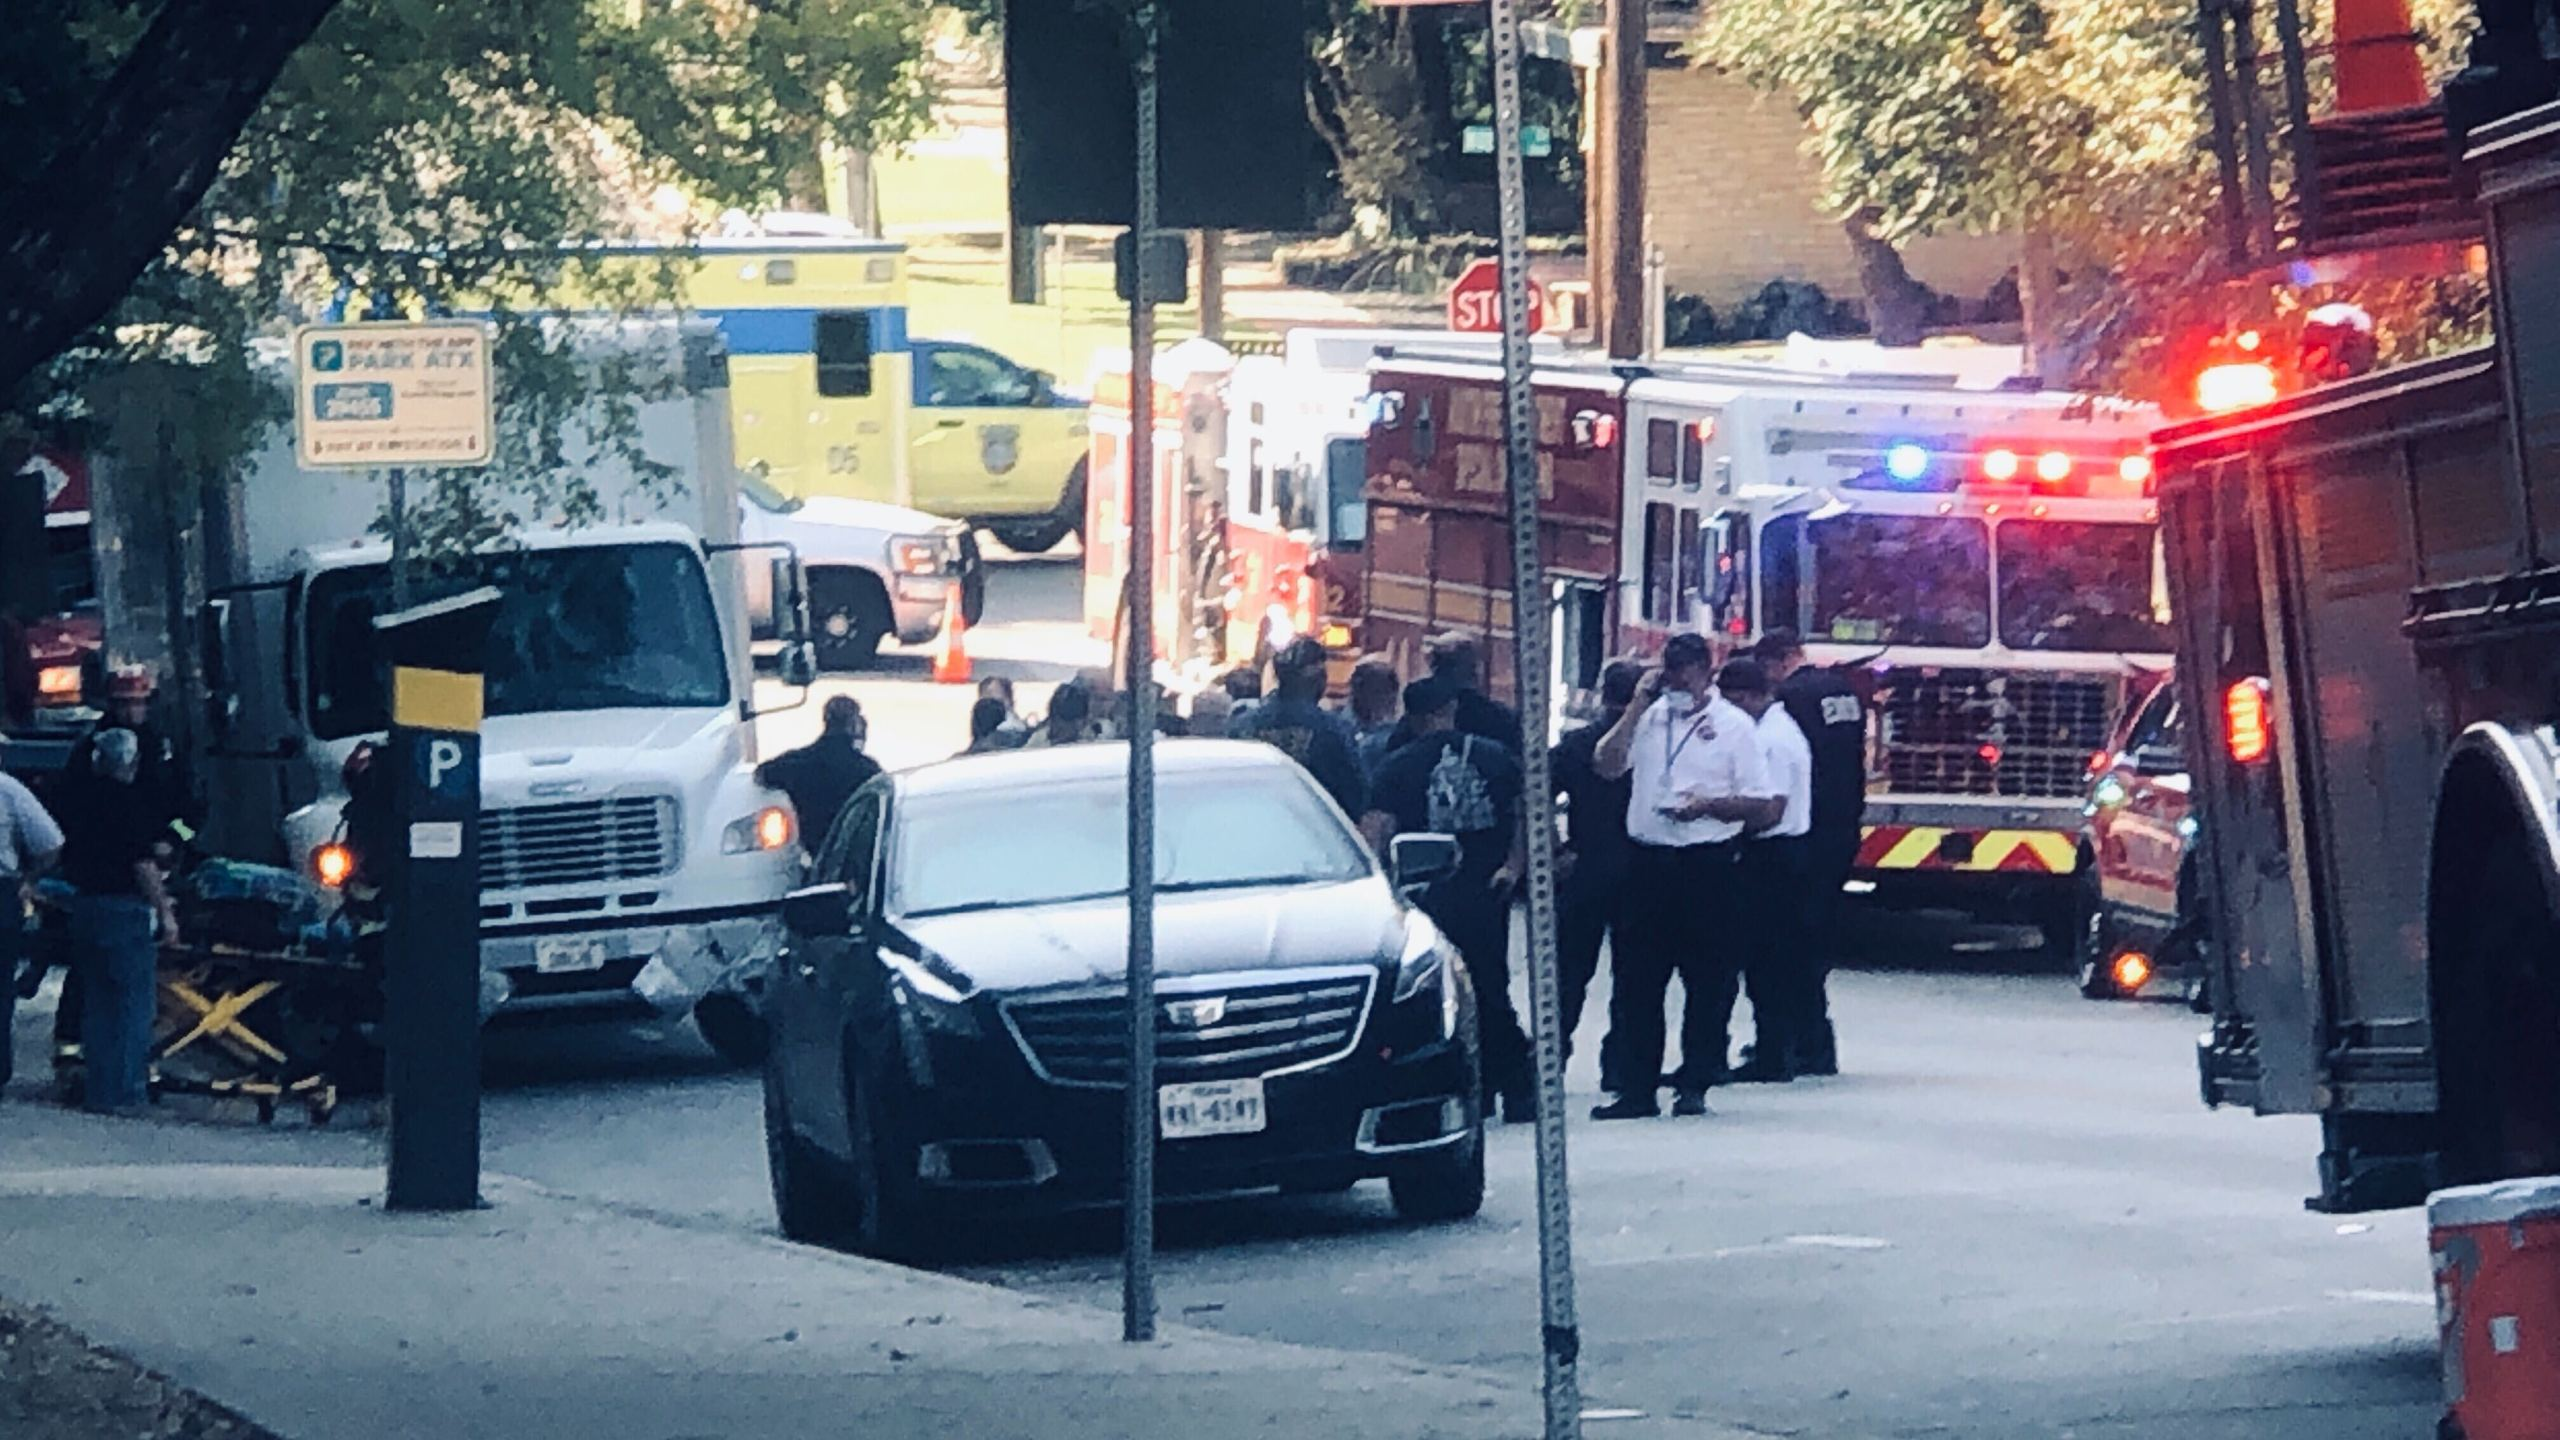 First responders on scene of chlorine gas leak in downtown Austin Oct. 14 (KXAN/Frank Martinez)